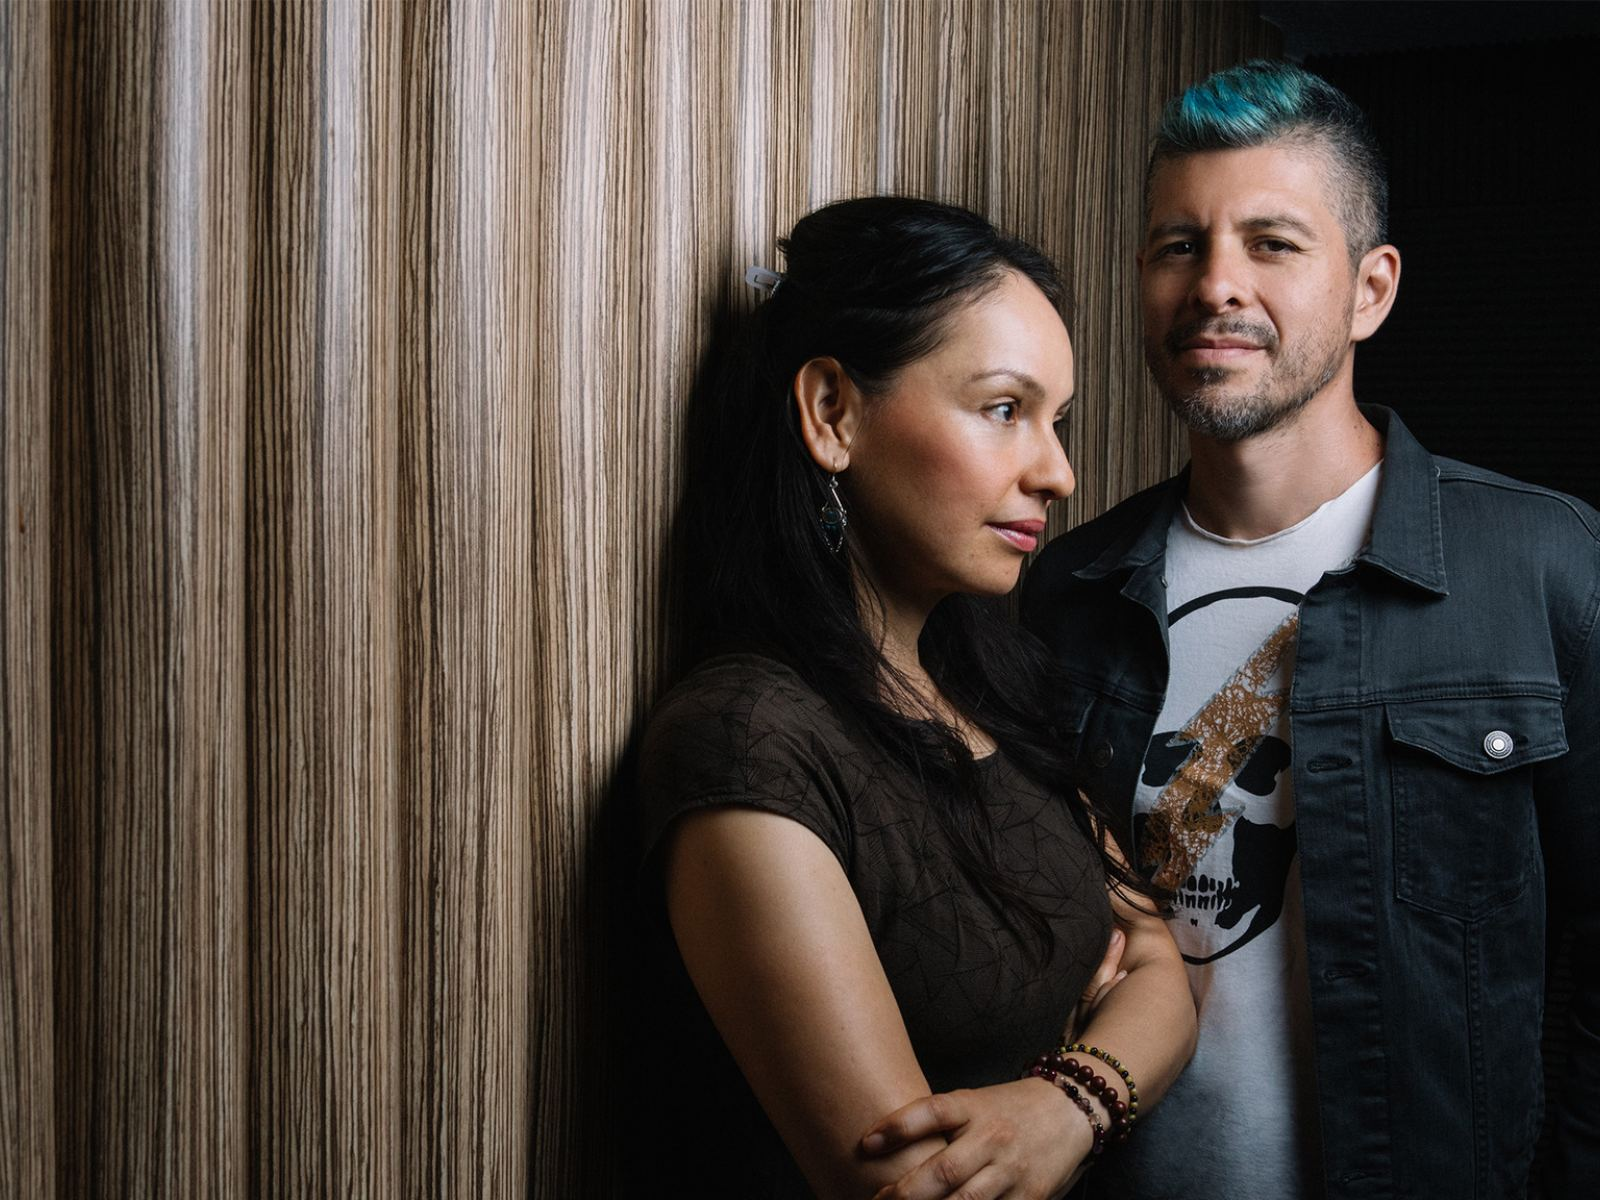 Main image for event titled Rodrigo Y Gabriela